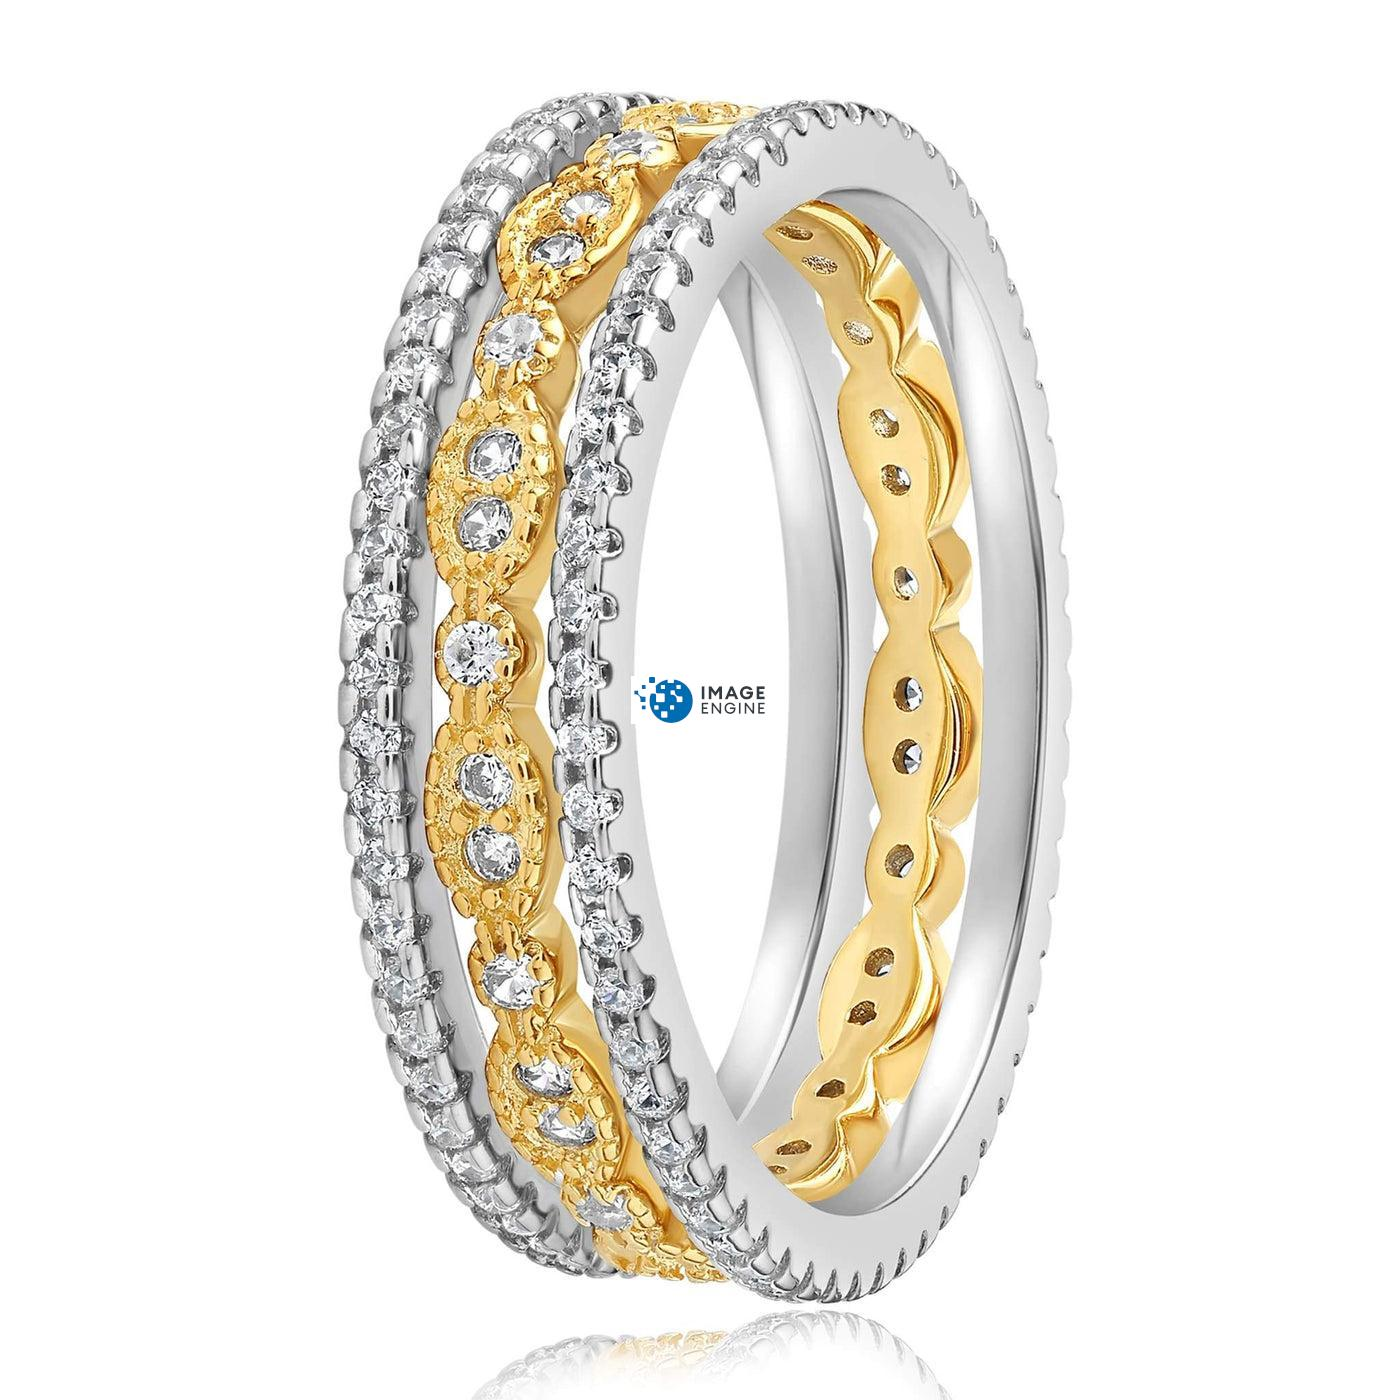 Juliana 3 Ring Set - Side View - 18K Yellow Gold Vermeil